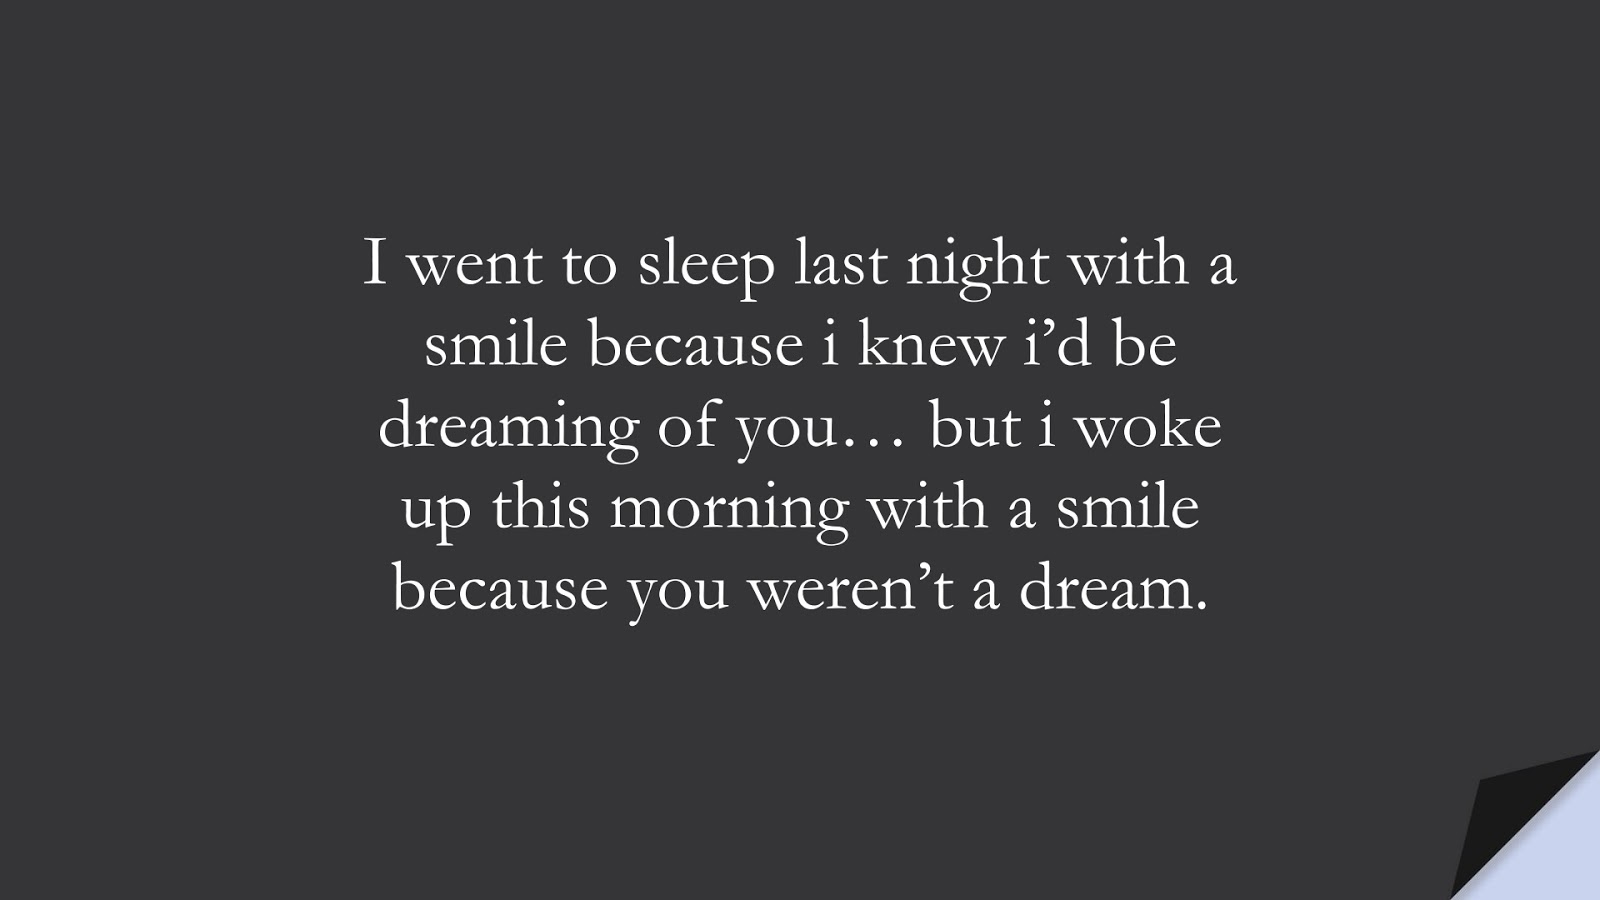 I went to sleep last night with a smile because i knew i'd be dreaming of you… but i woke up this morning with a smile because you weren't a dream.FALSE